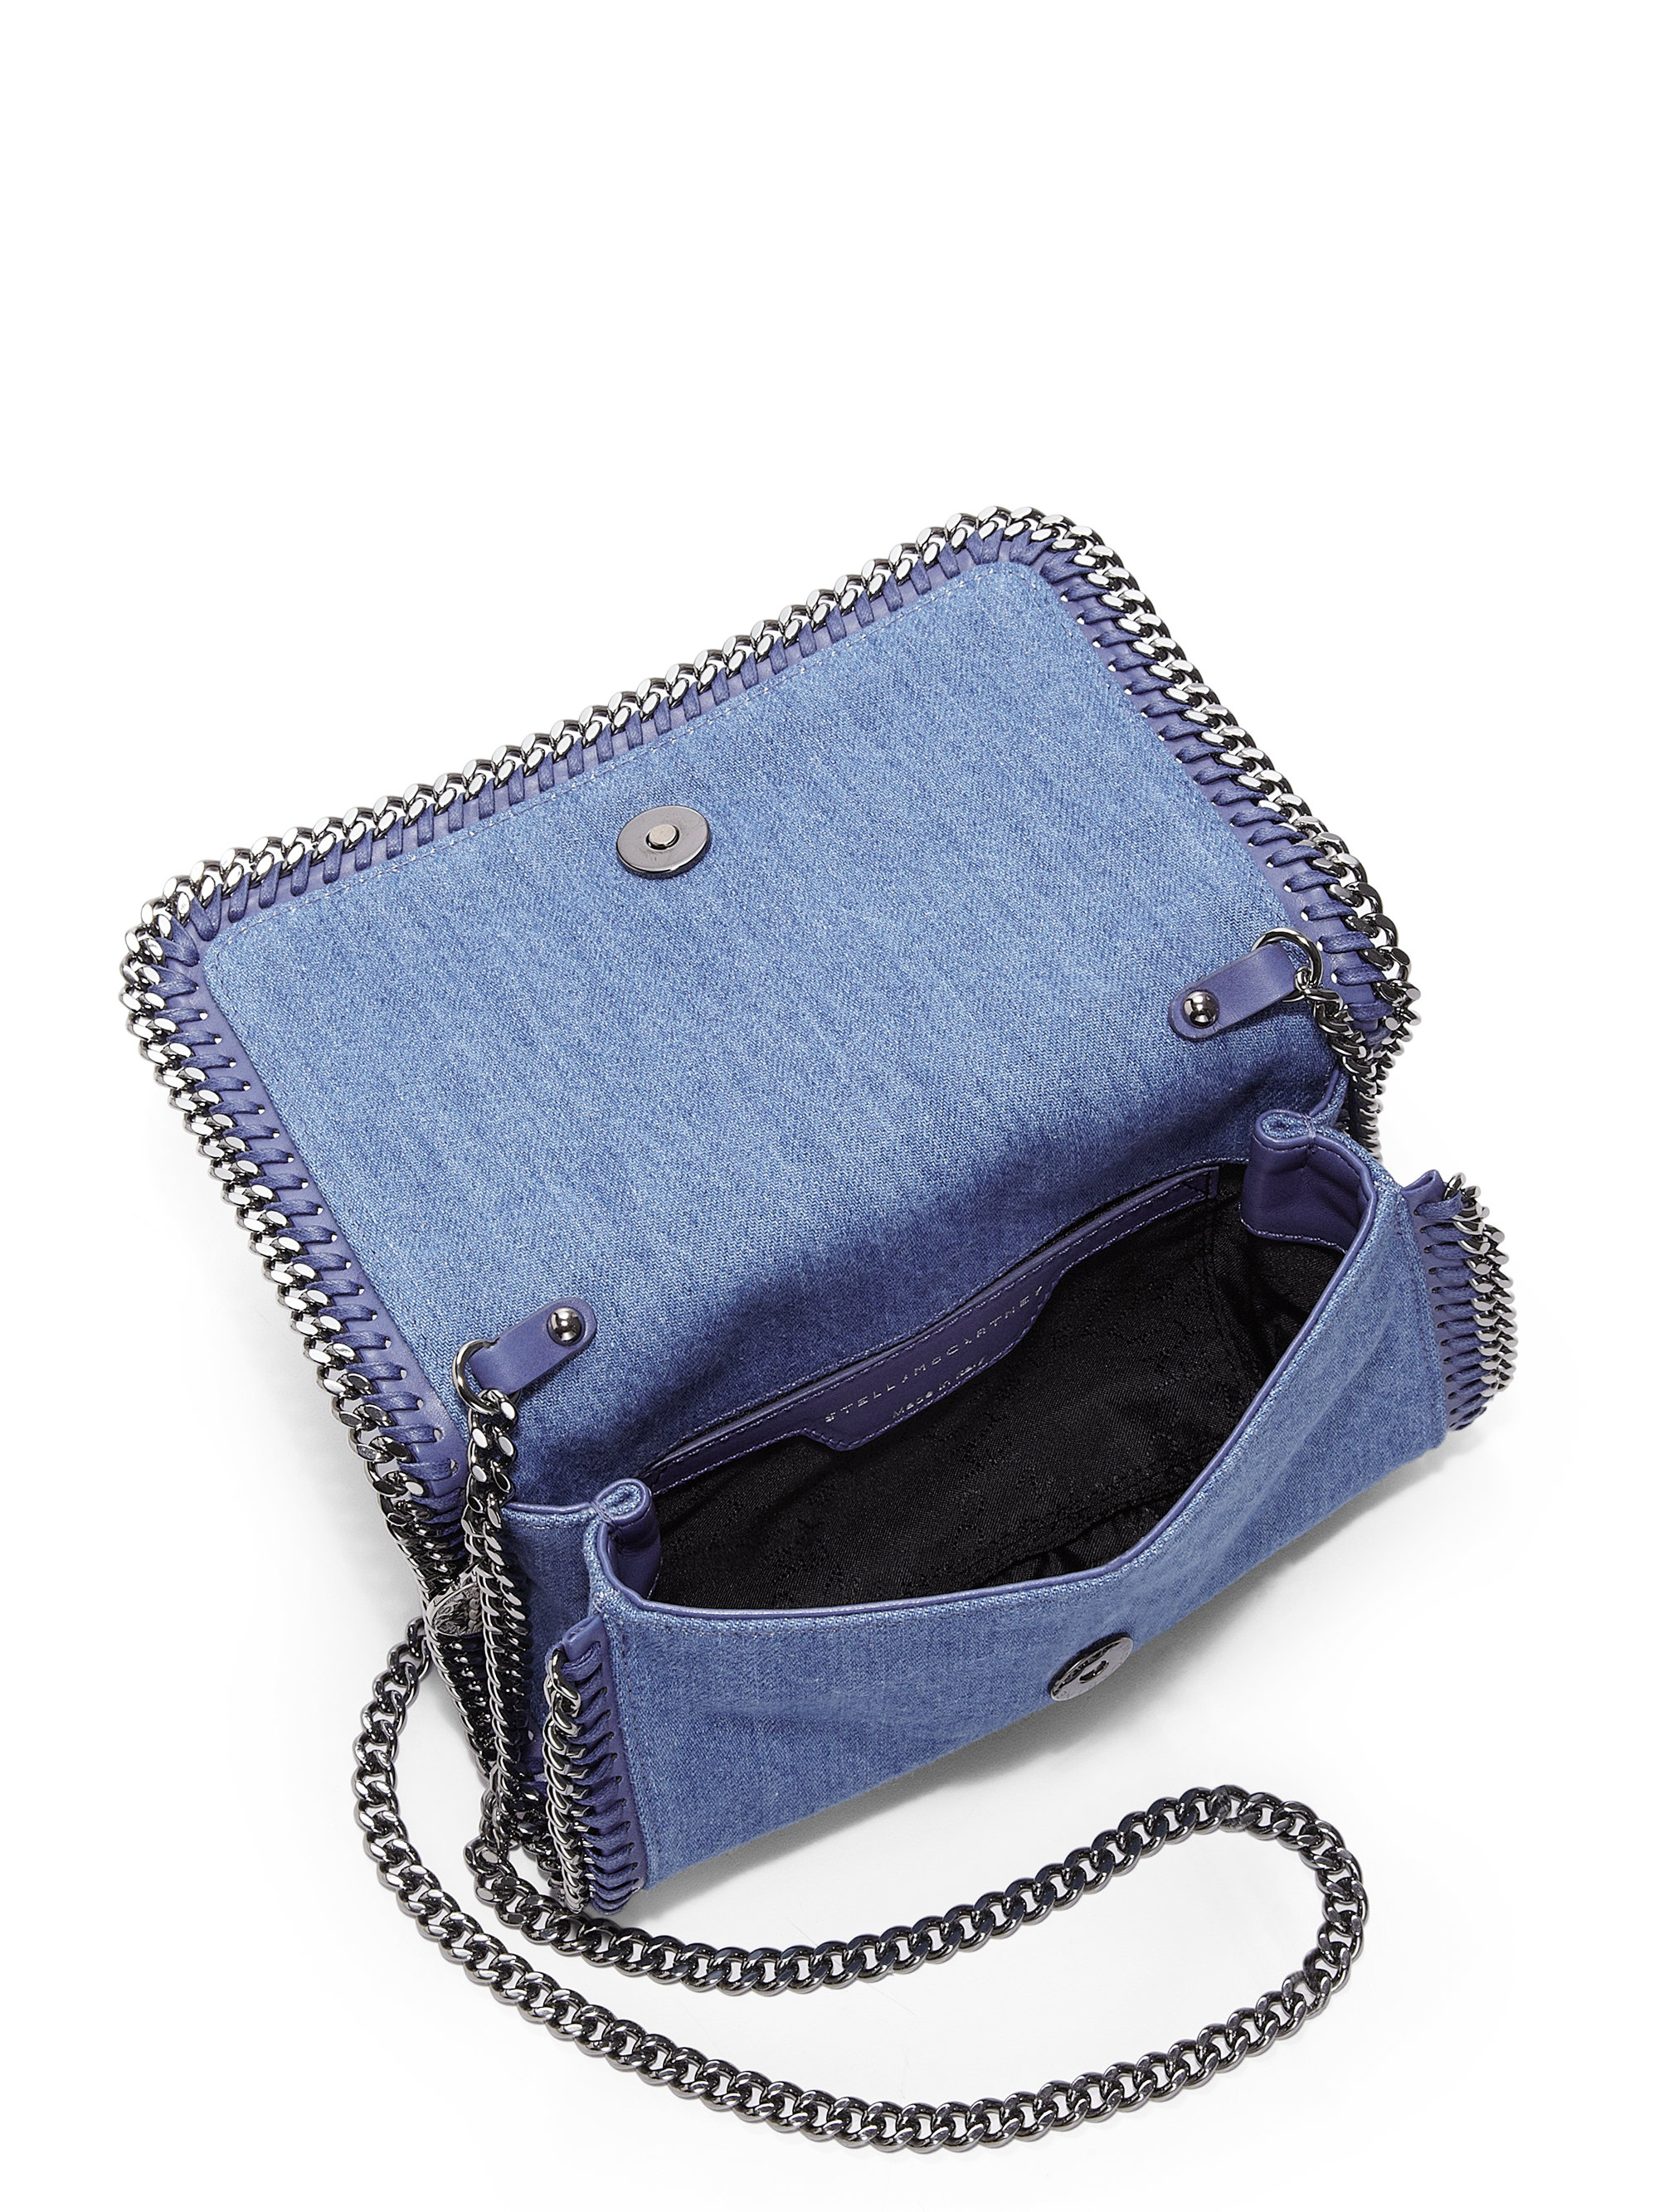 ecc7fb24d1 Gallery. Previously sold at  Saks Fifth Avenue · Women s Stella Mccartney  Falabella Women s Camera Bags ...